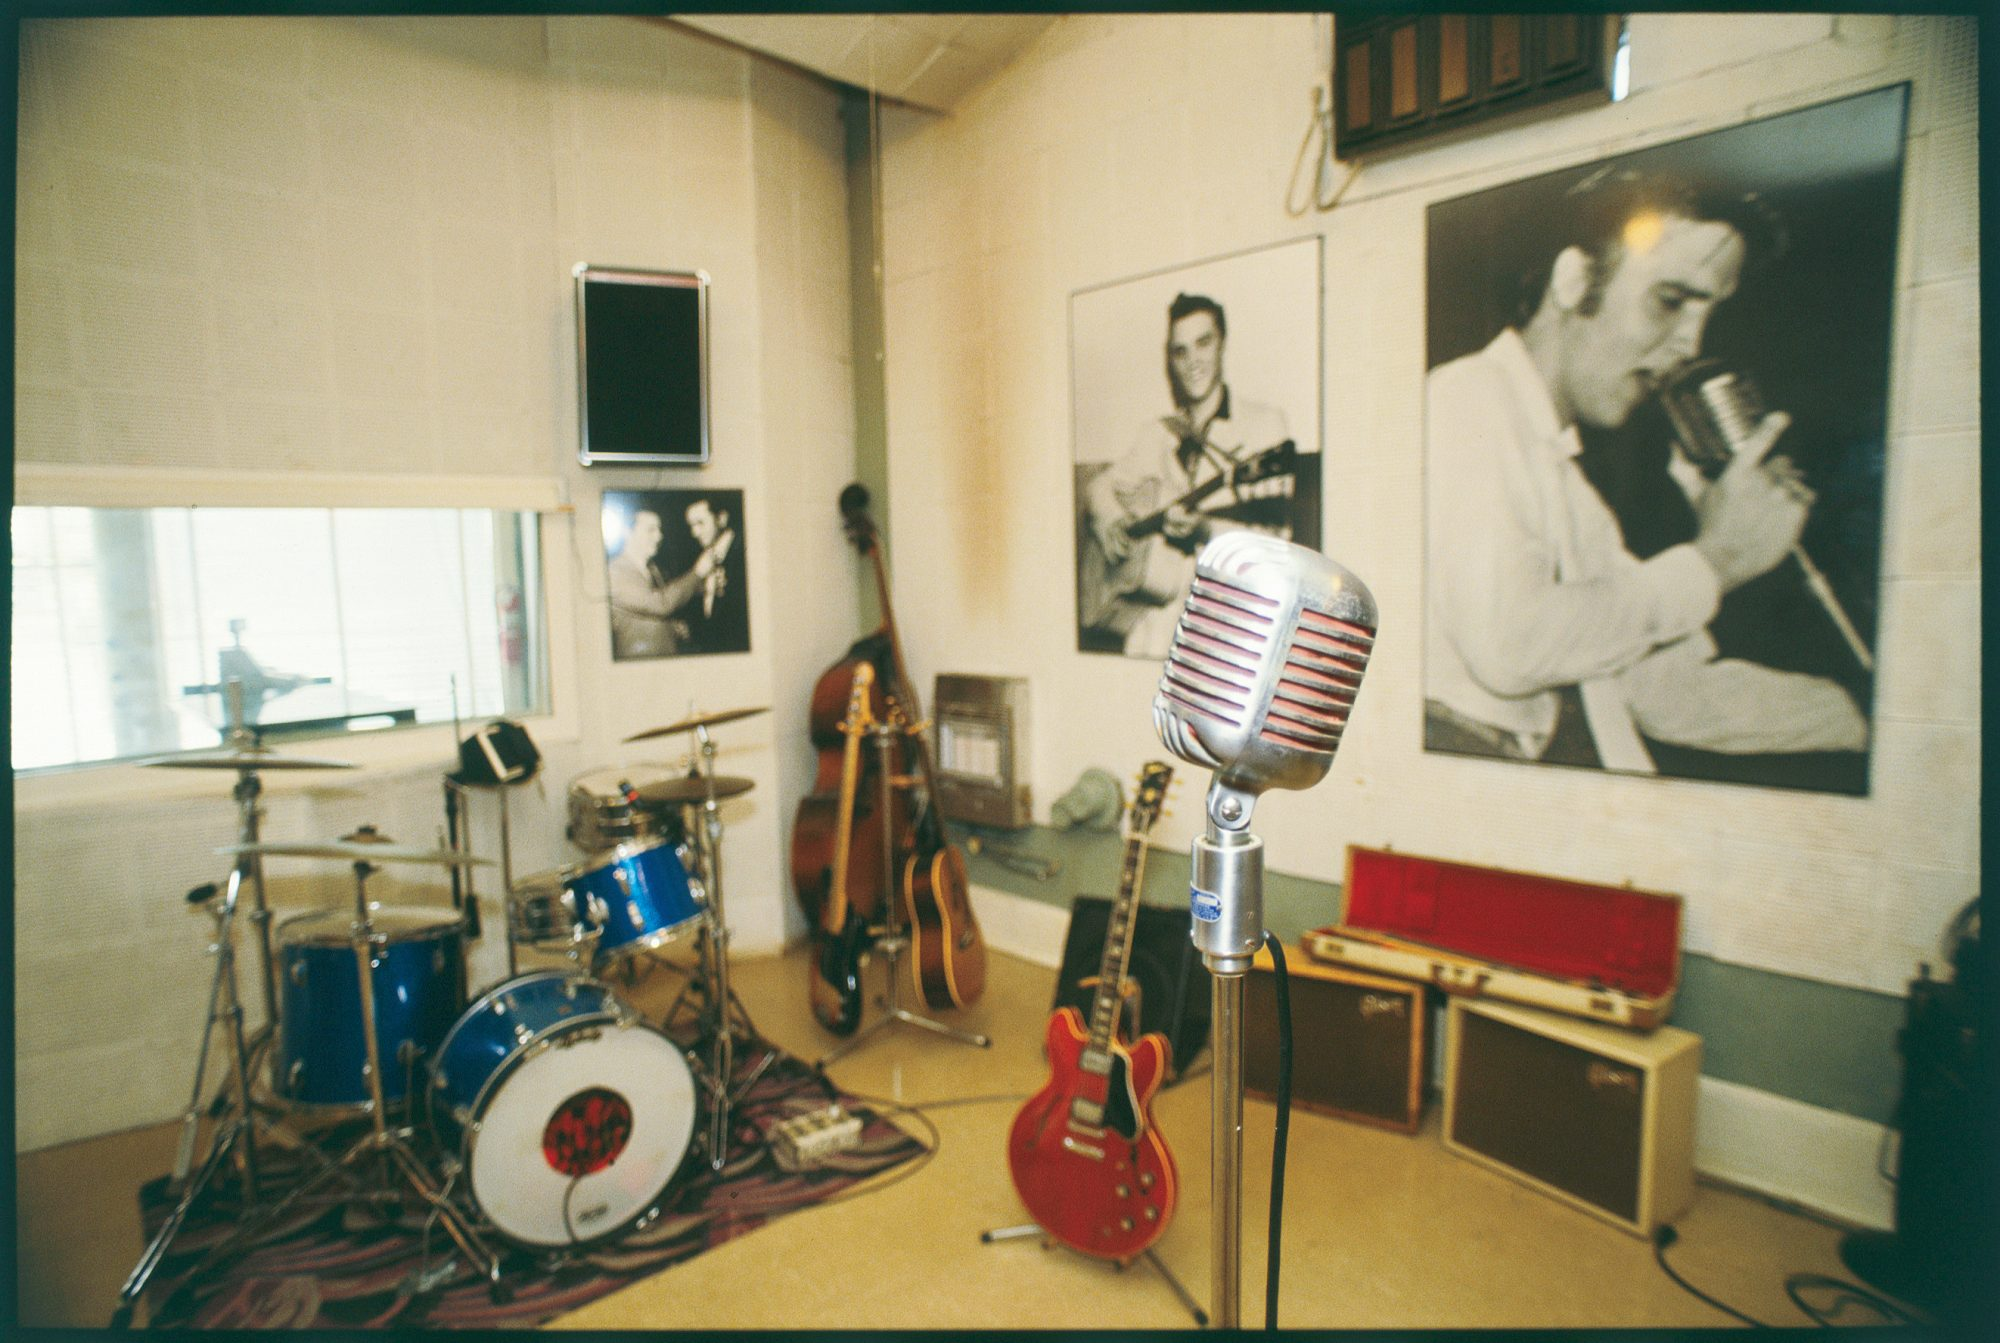 2: Soak in Sun Studio